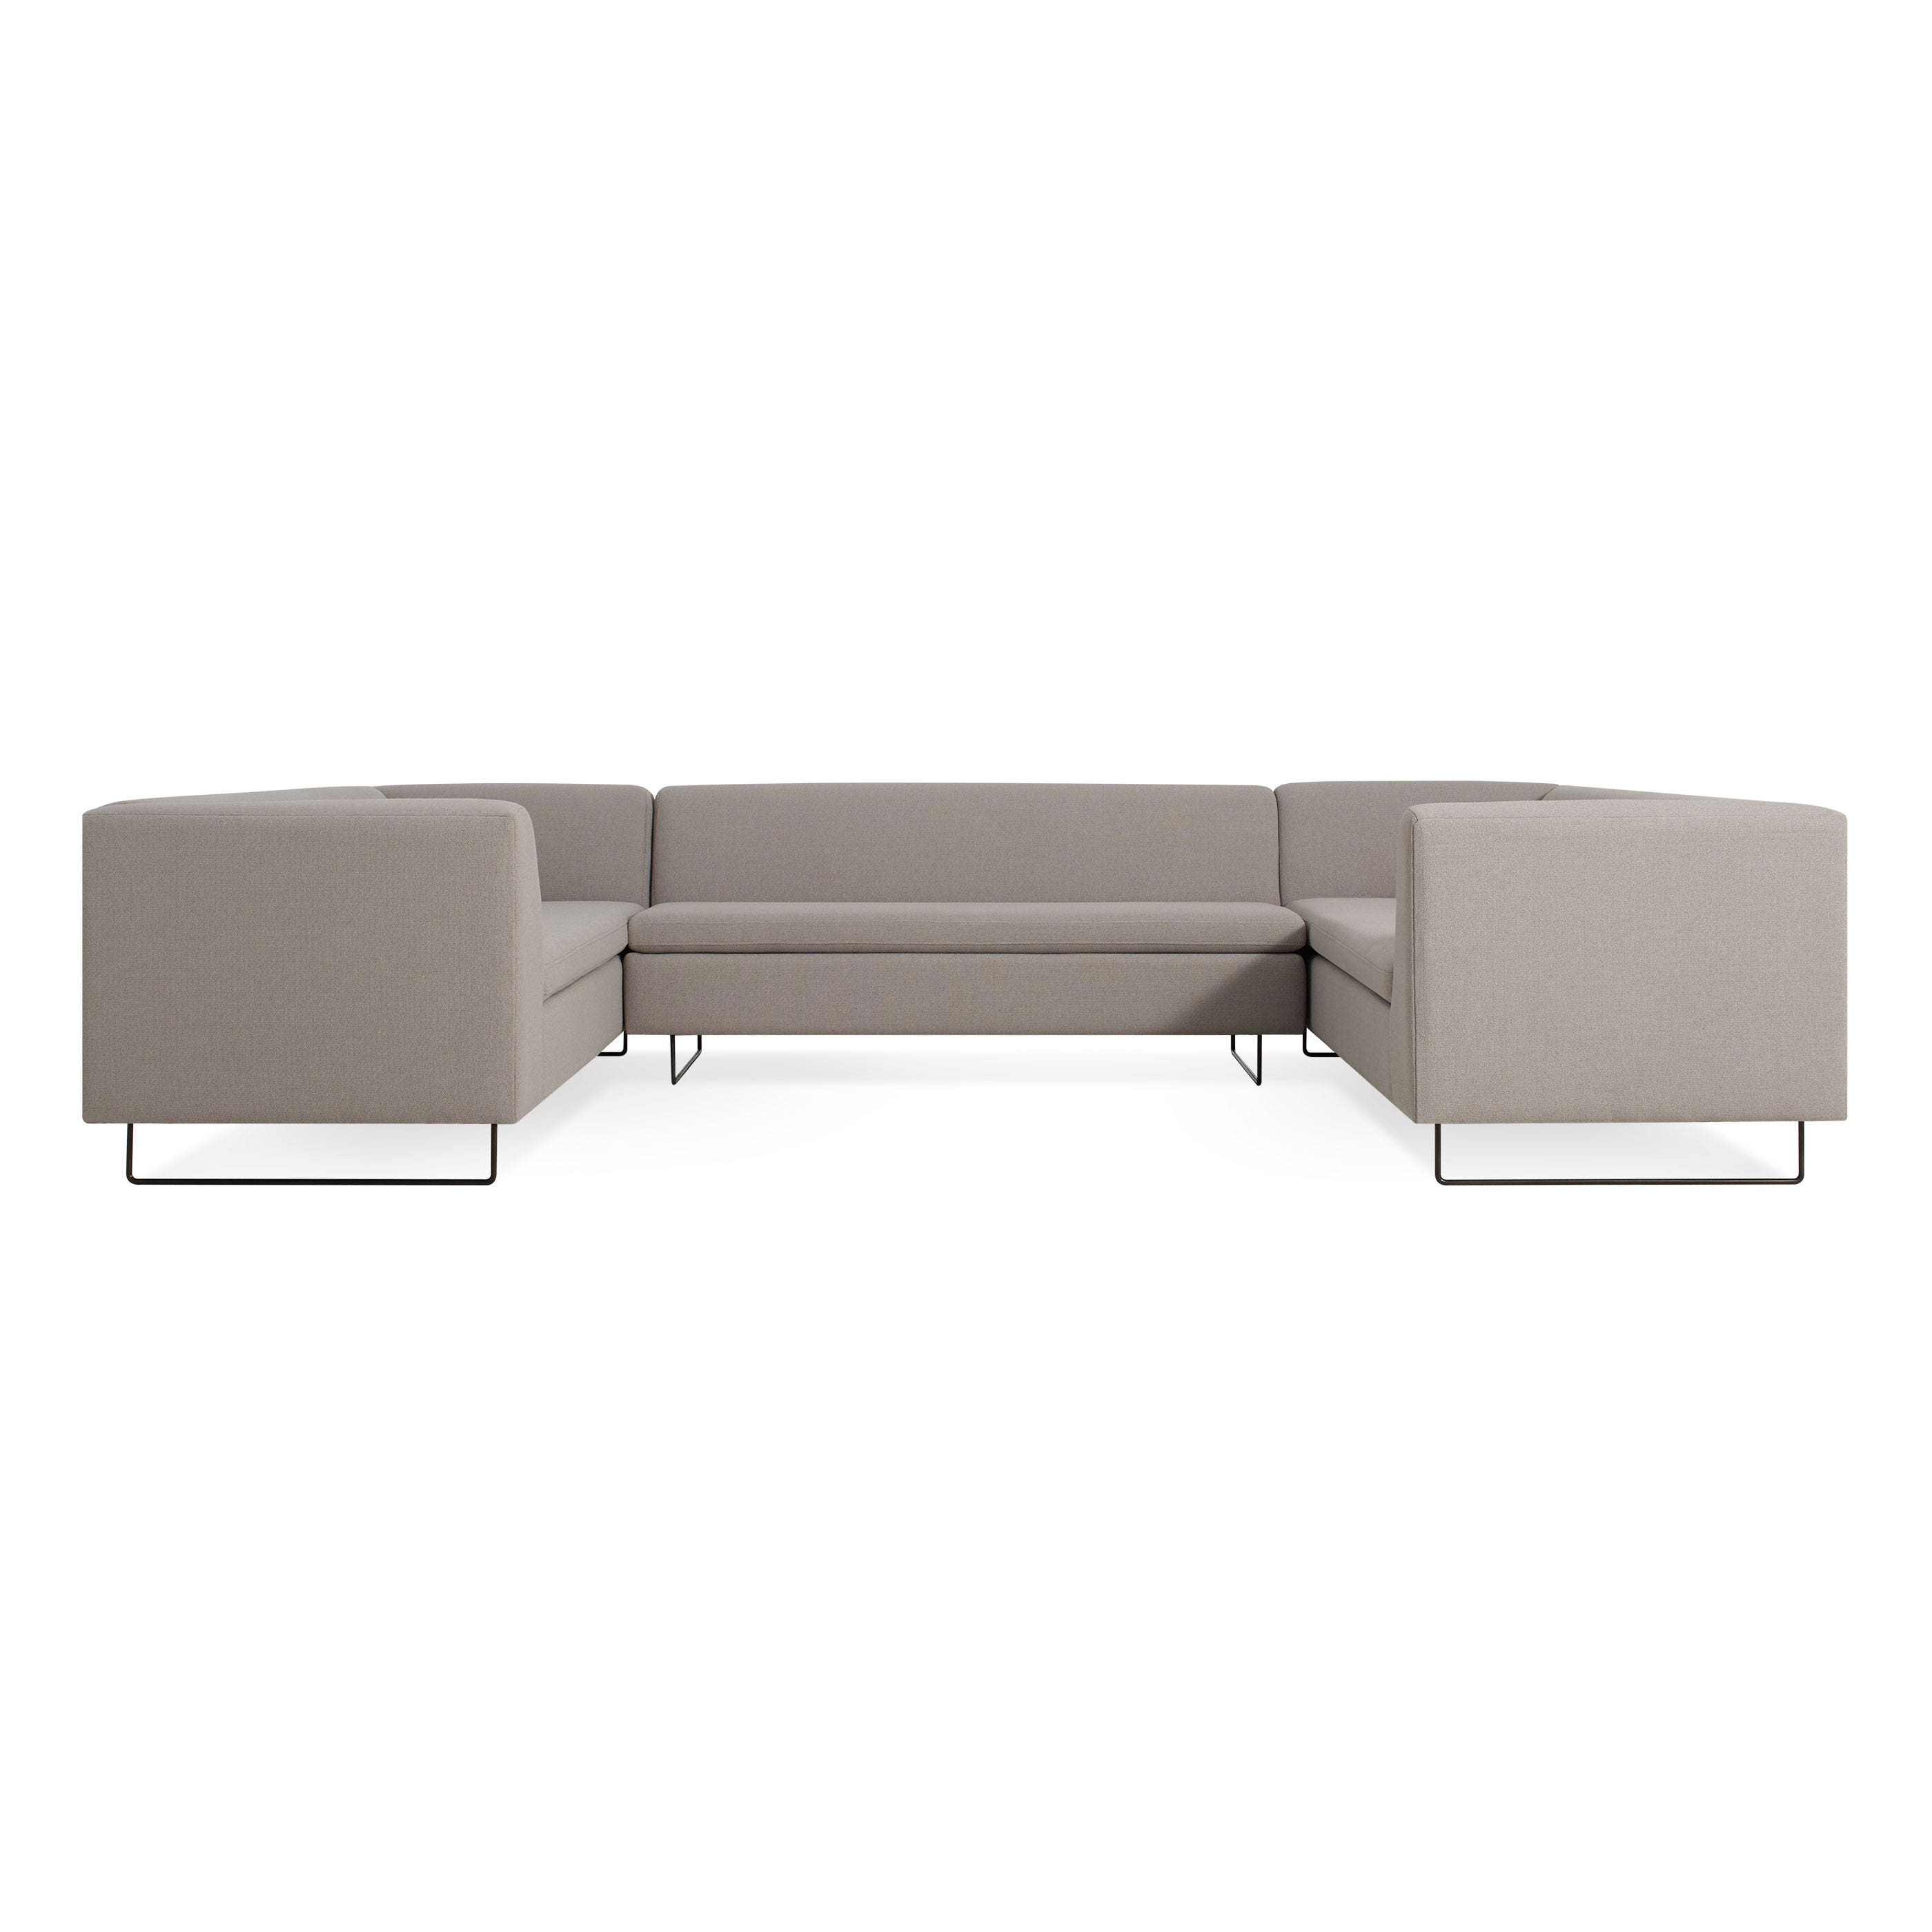 previous image bonnie u0026 clyde ushaped sectional sofa condit silver